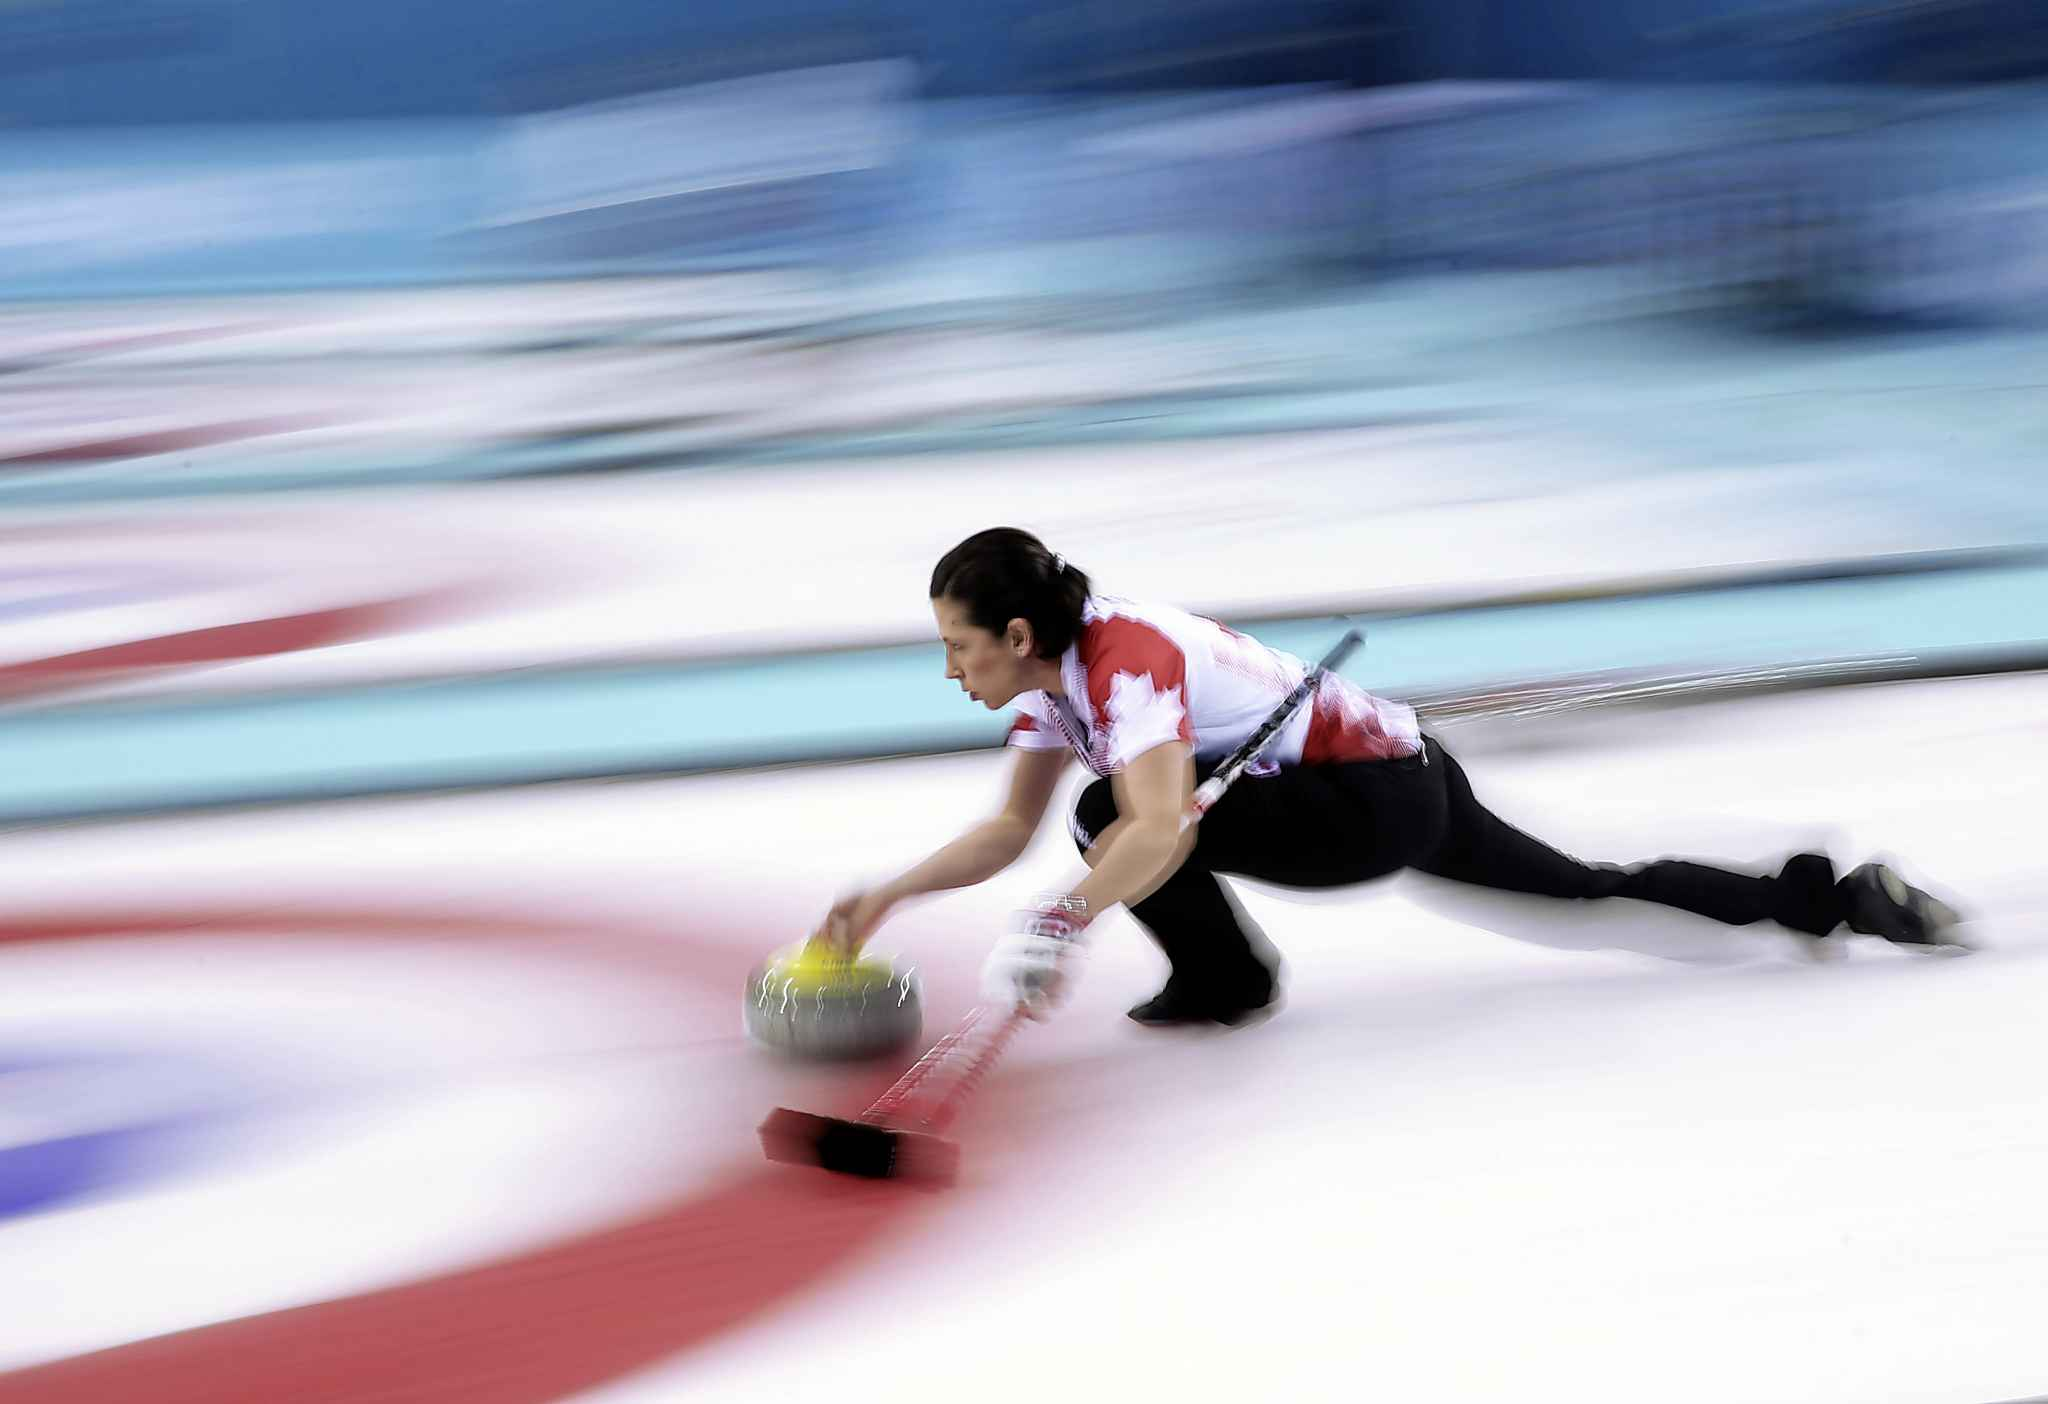 Canada's Jill Officer throws against Great Britain during women's curling semifinals at the Ice Cube Curling Center during the Winter Olympics in Sochi, Russia, Wednesday, Feb. 19, 2014. (Brian Cassella/Chicago Tribune/MCT) TRIBUNE MEDIA MCT